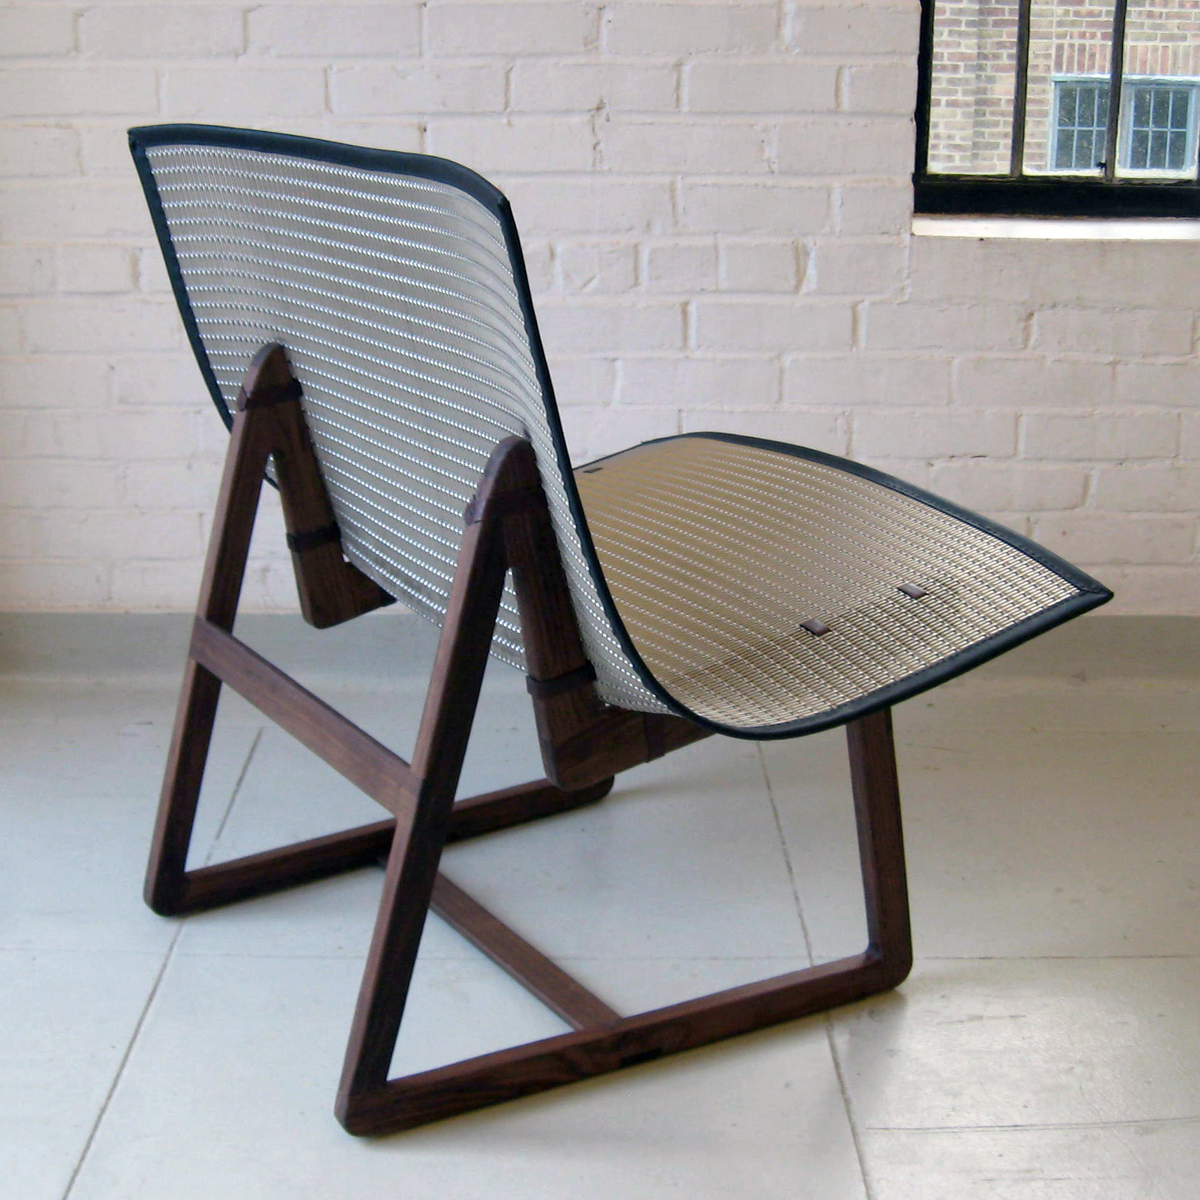 The interaction of dark walnut and metallics create a modern-looking chair.